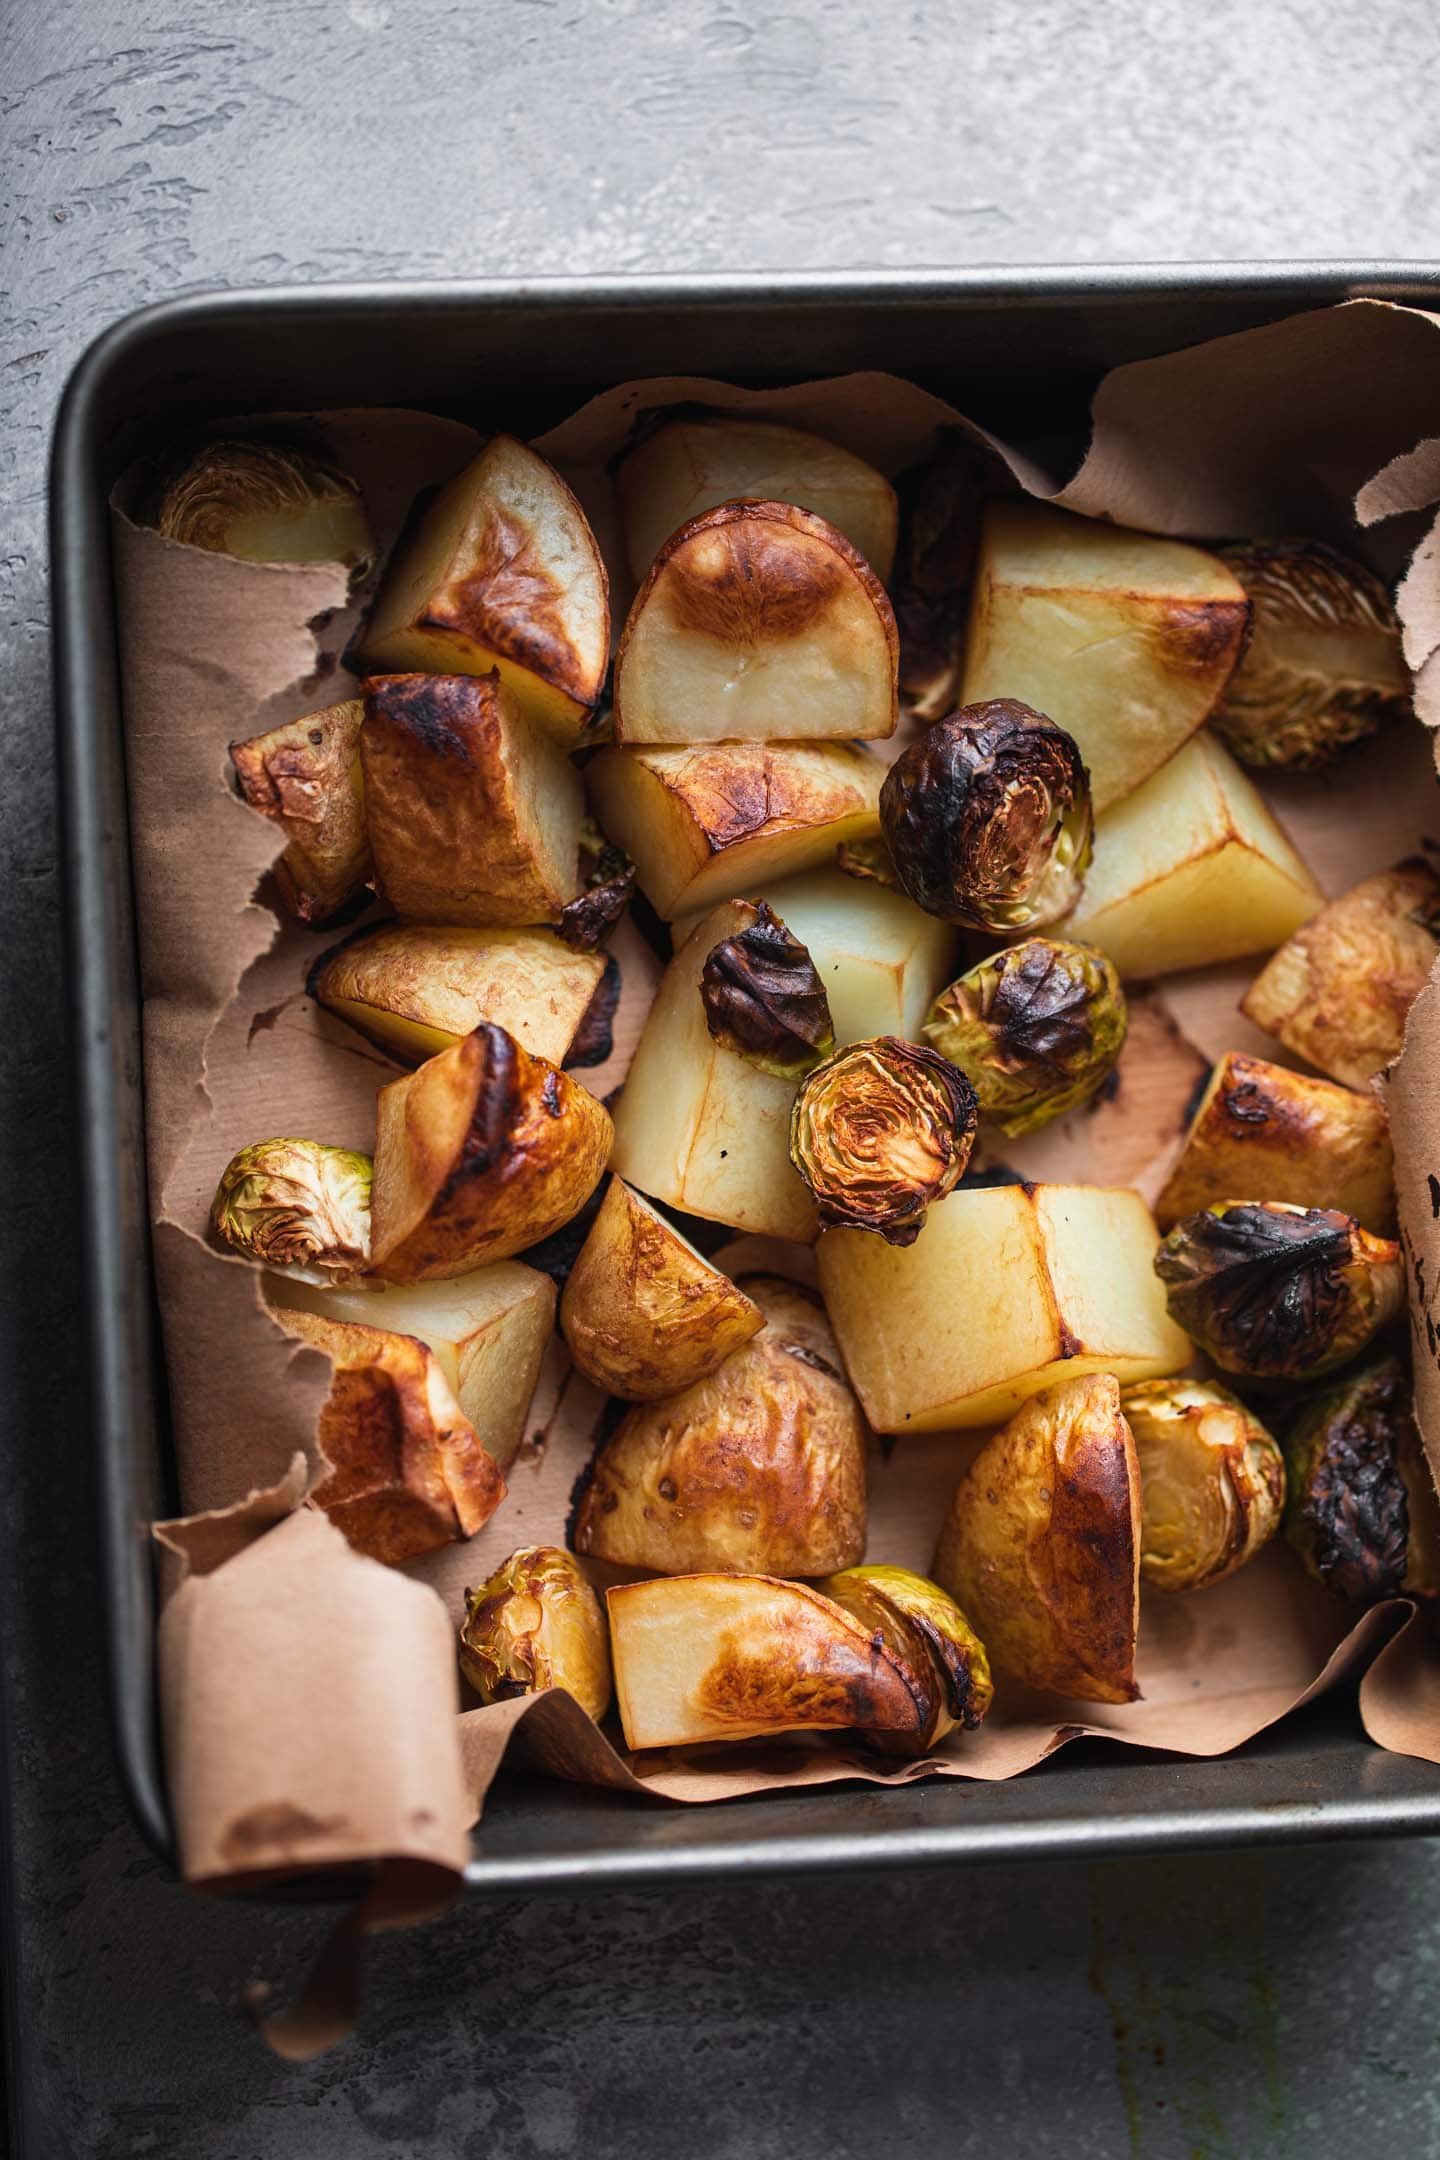 Roasted vegetables in a baking dish